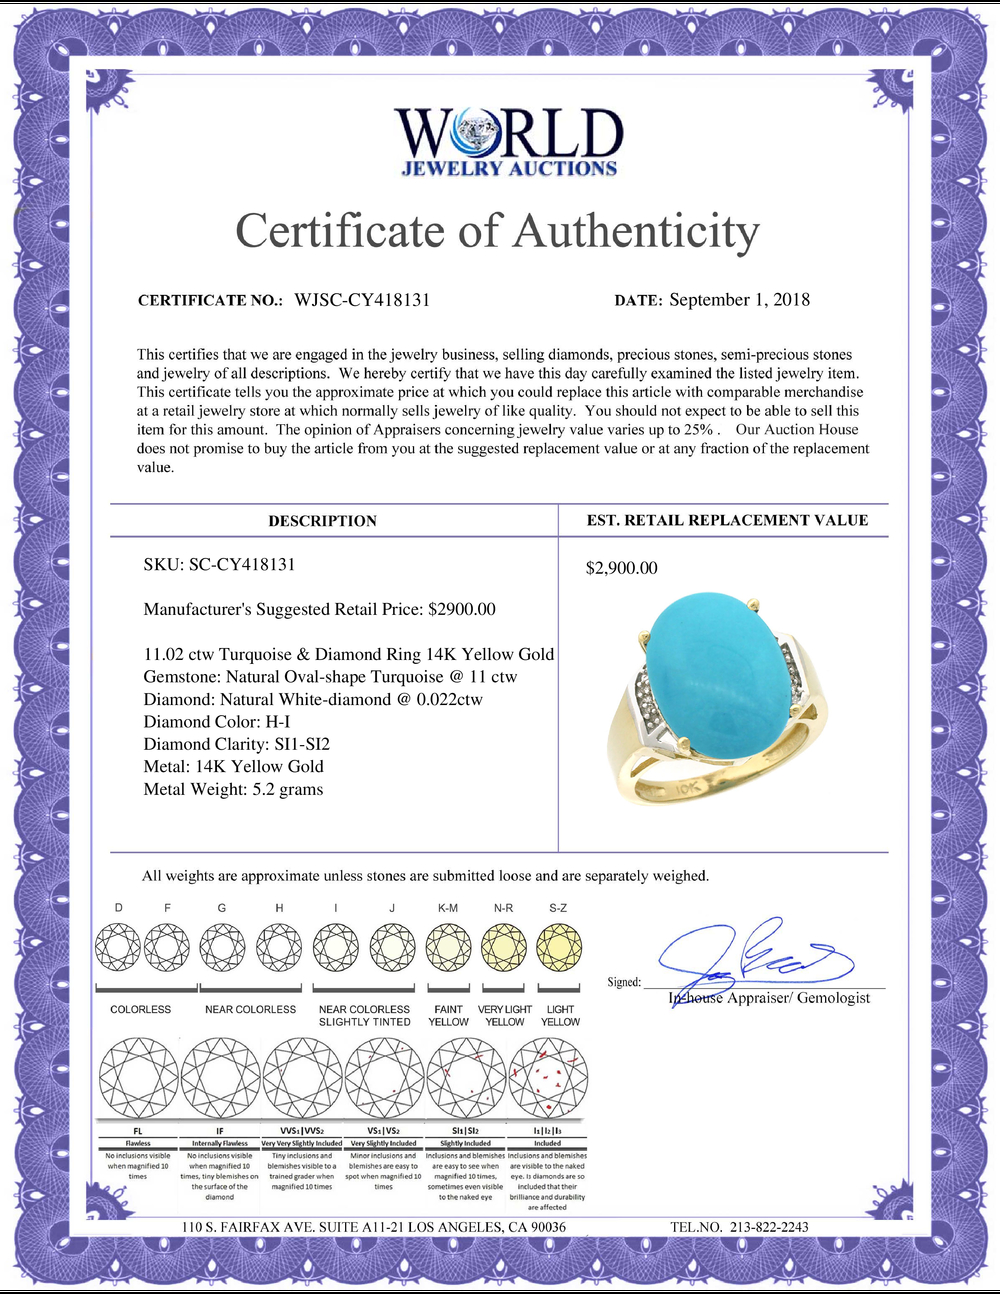 Lot 3056: Natural 11.02 ctw Turquoise & Diamond Engagement Ring 14K Yellow Gold - REF-94M5H